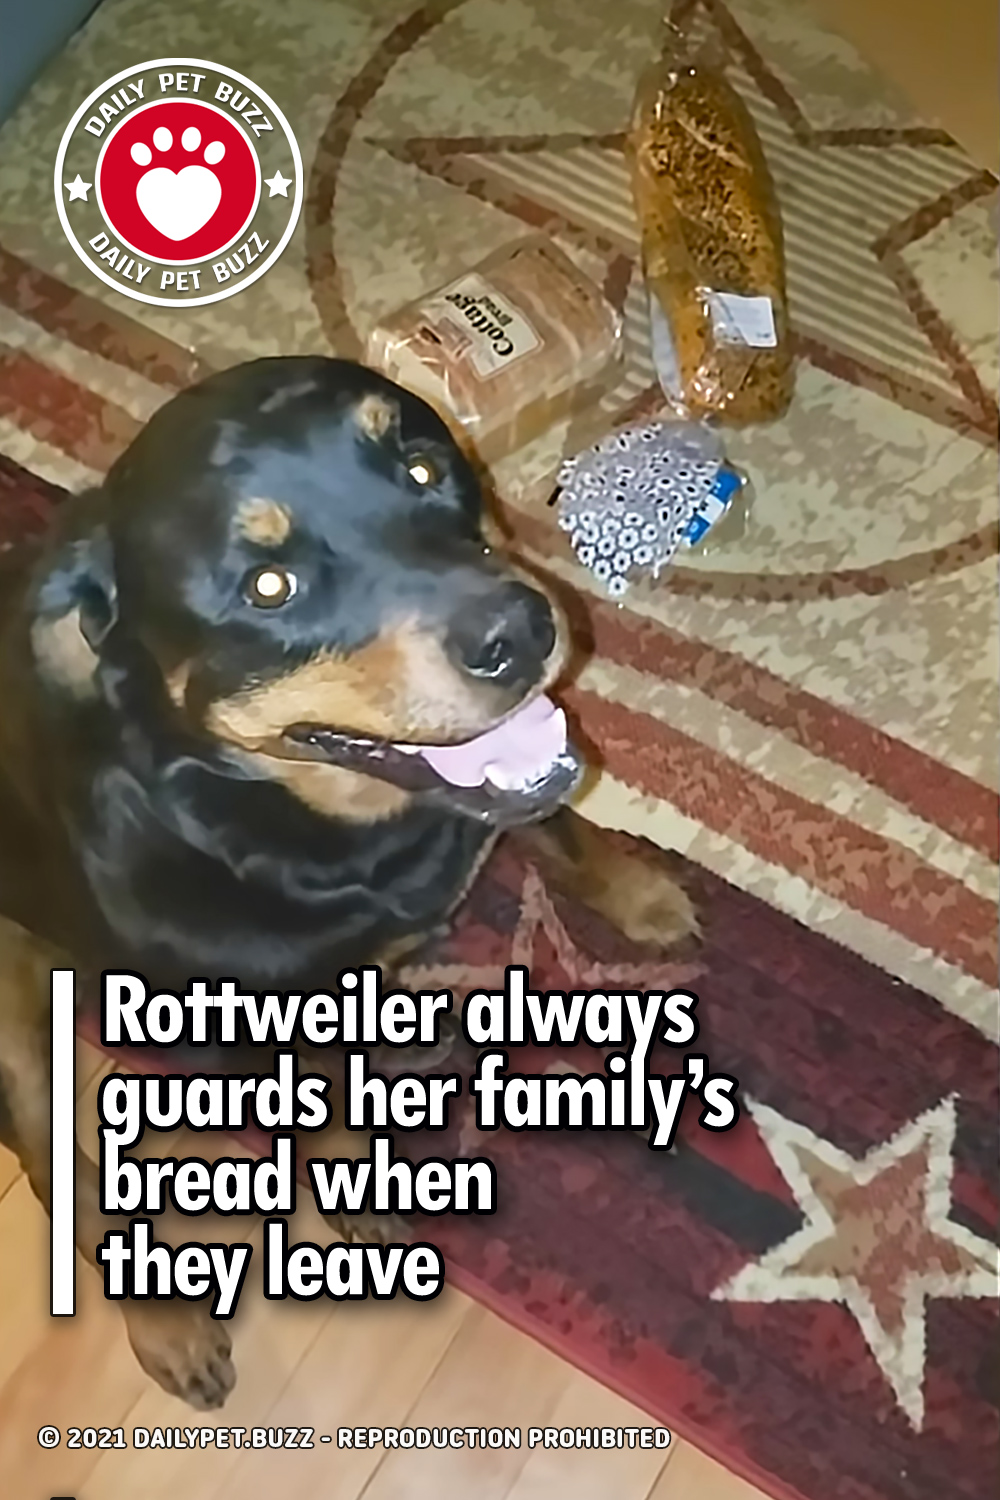 Rottweiler always guards her family's bread when they leave